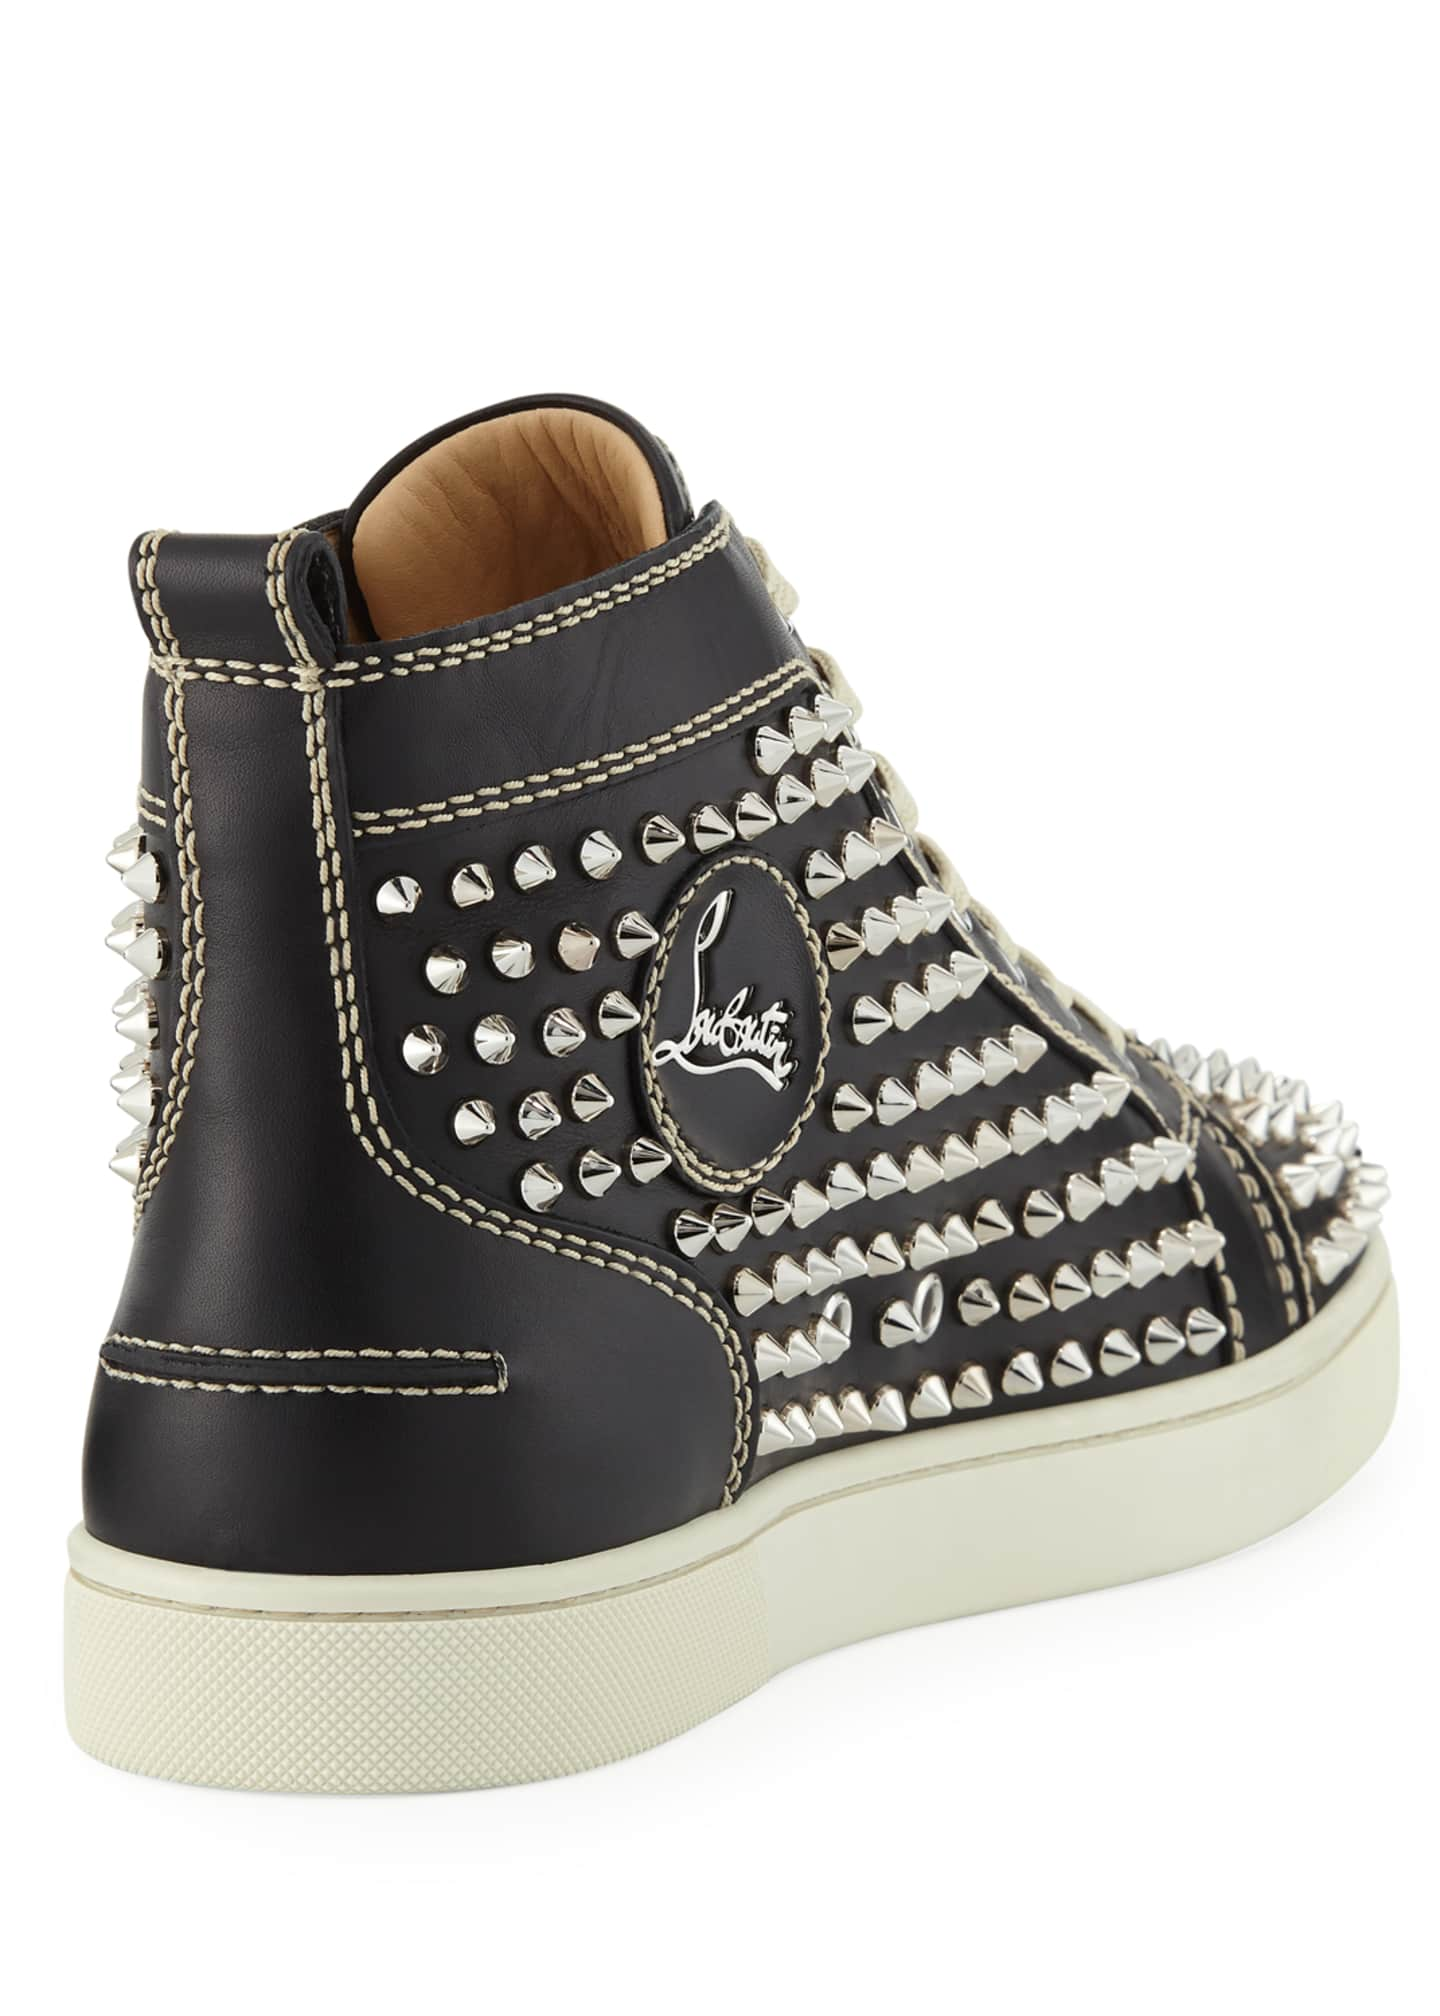 Image 4 of 4: Men's Louis Mid-Top Spiked Leather Sneakers